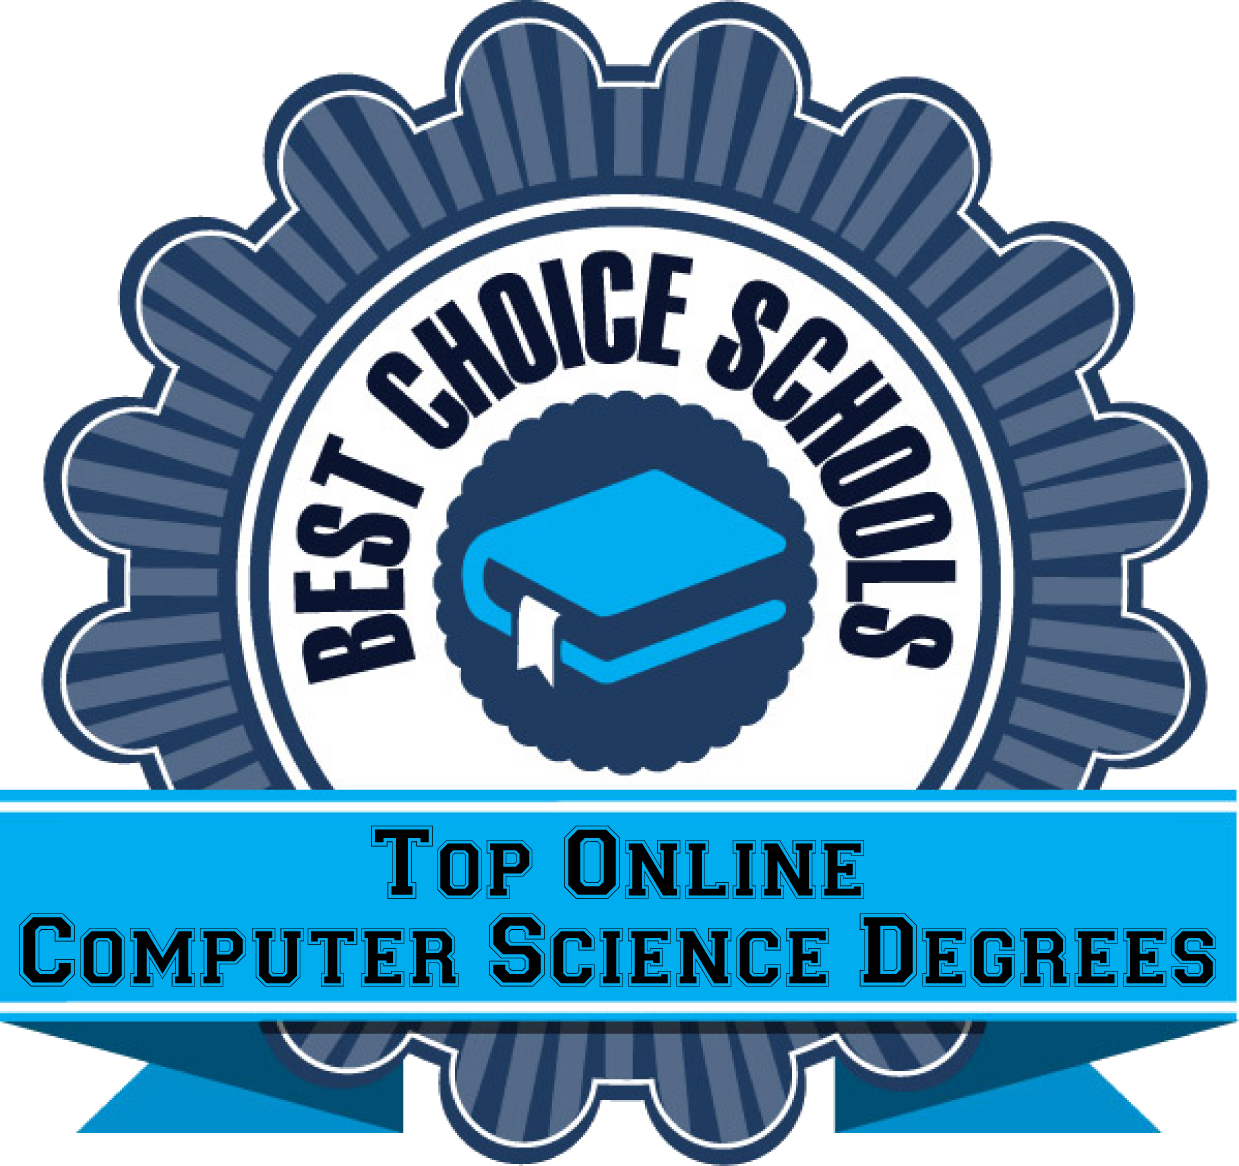 High School classes to take for computer science degree?